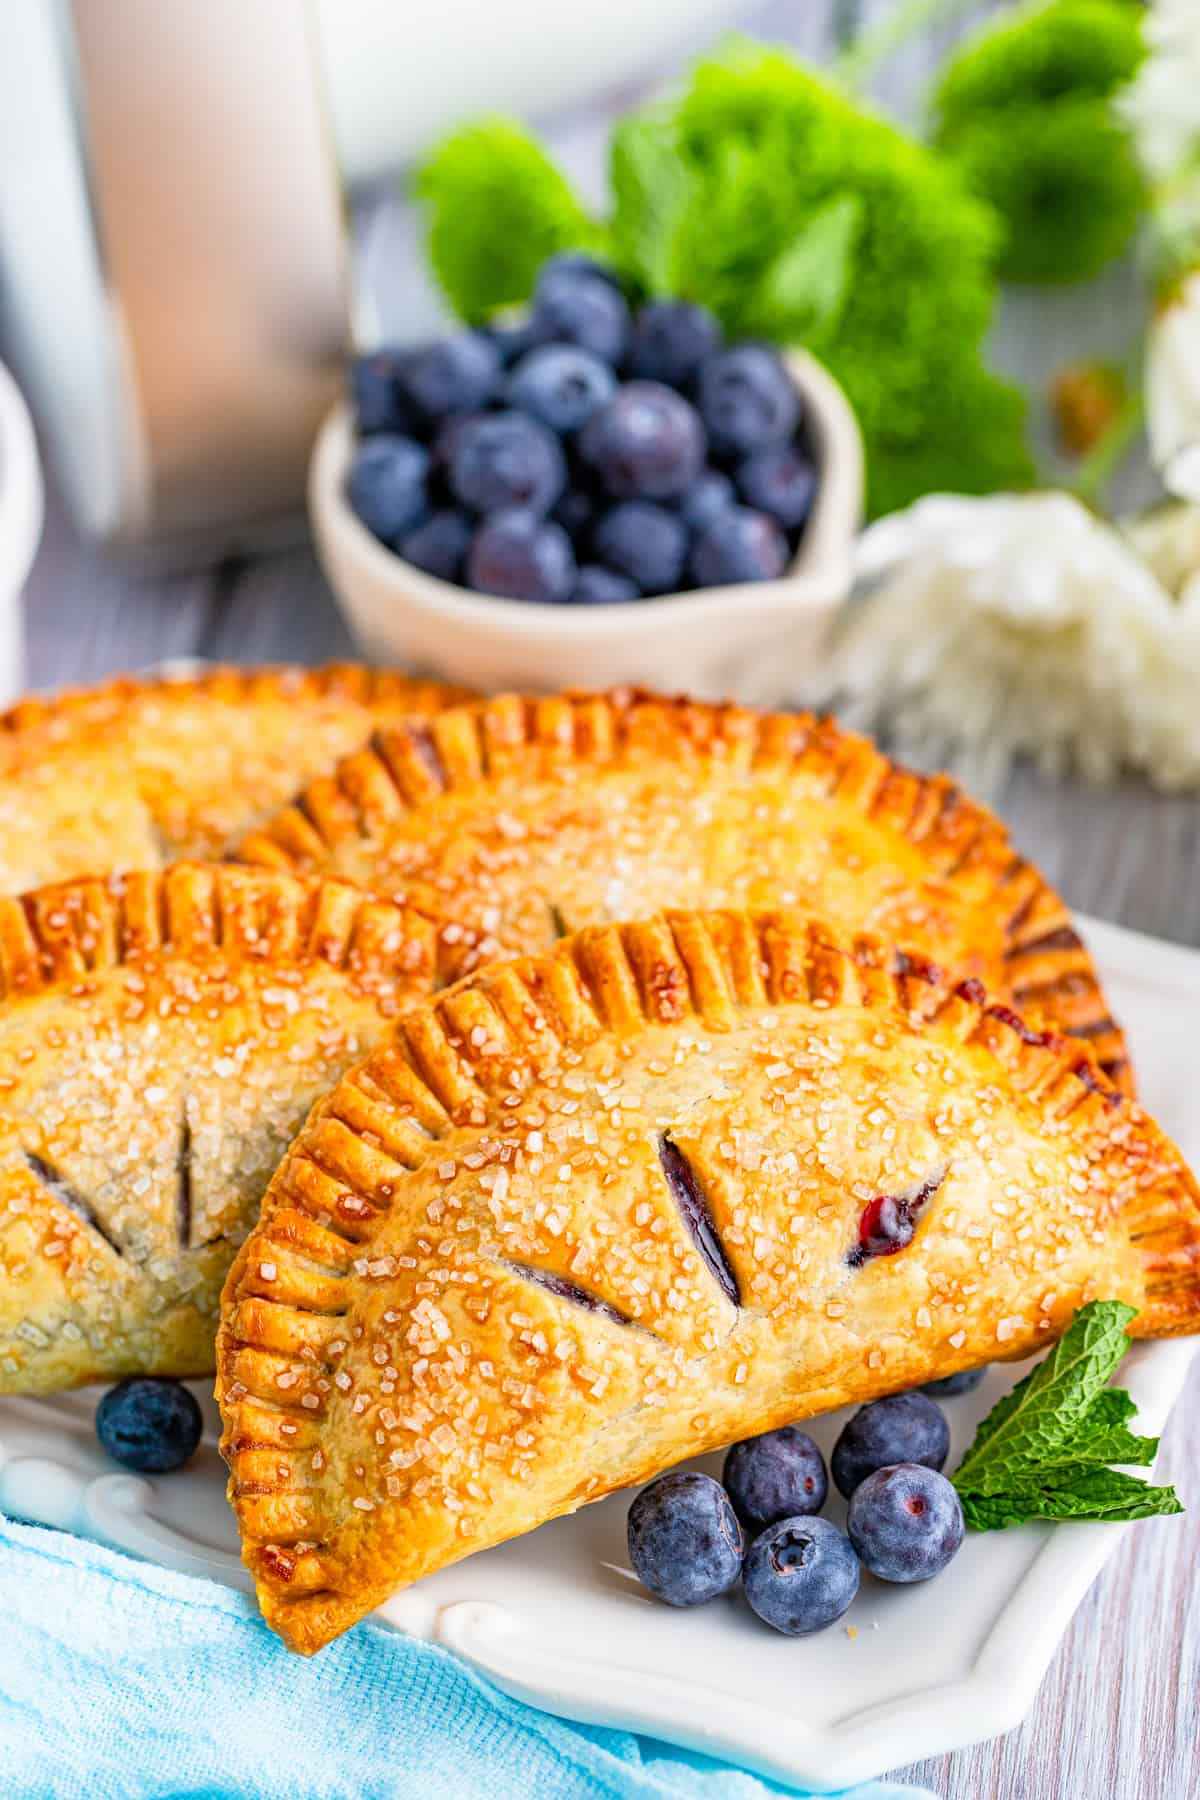 Side view of layered Hand Pies on platter with blueberries and mint